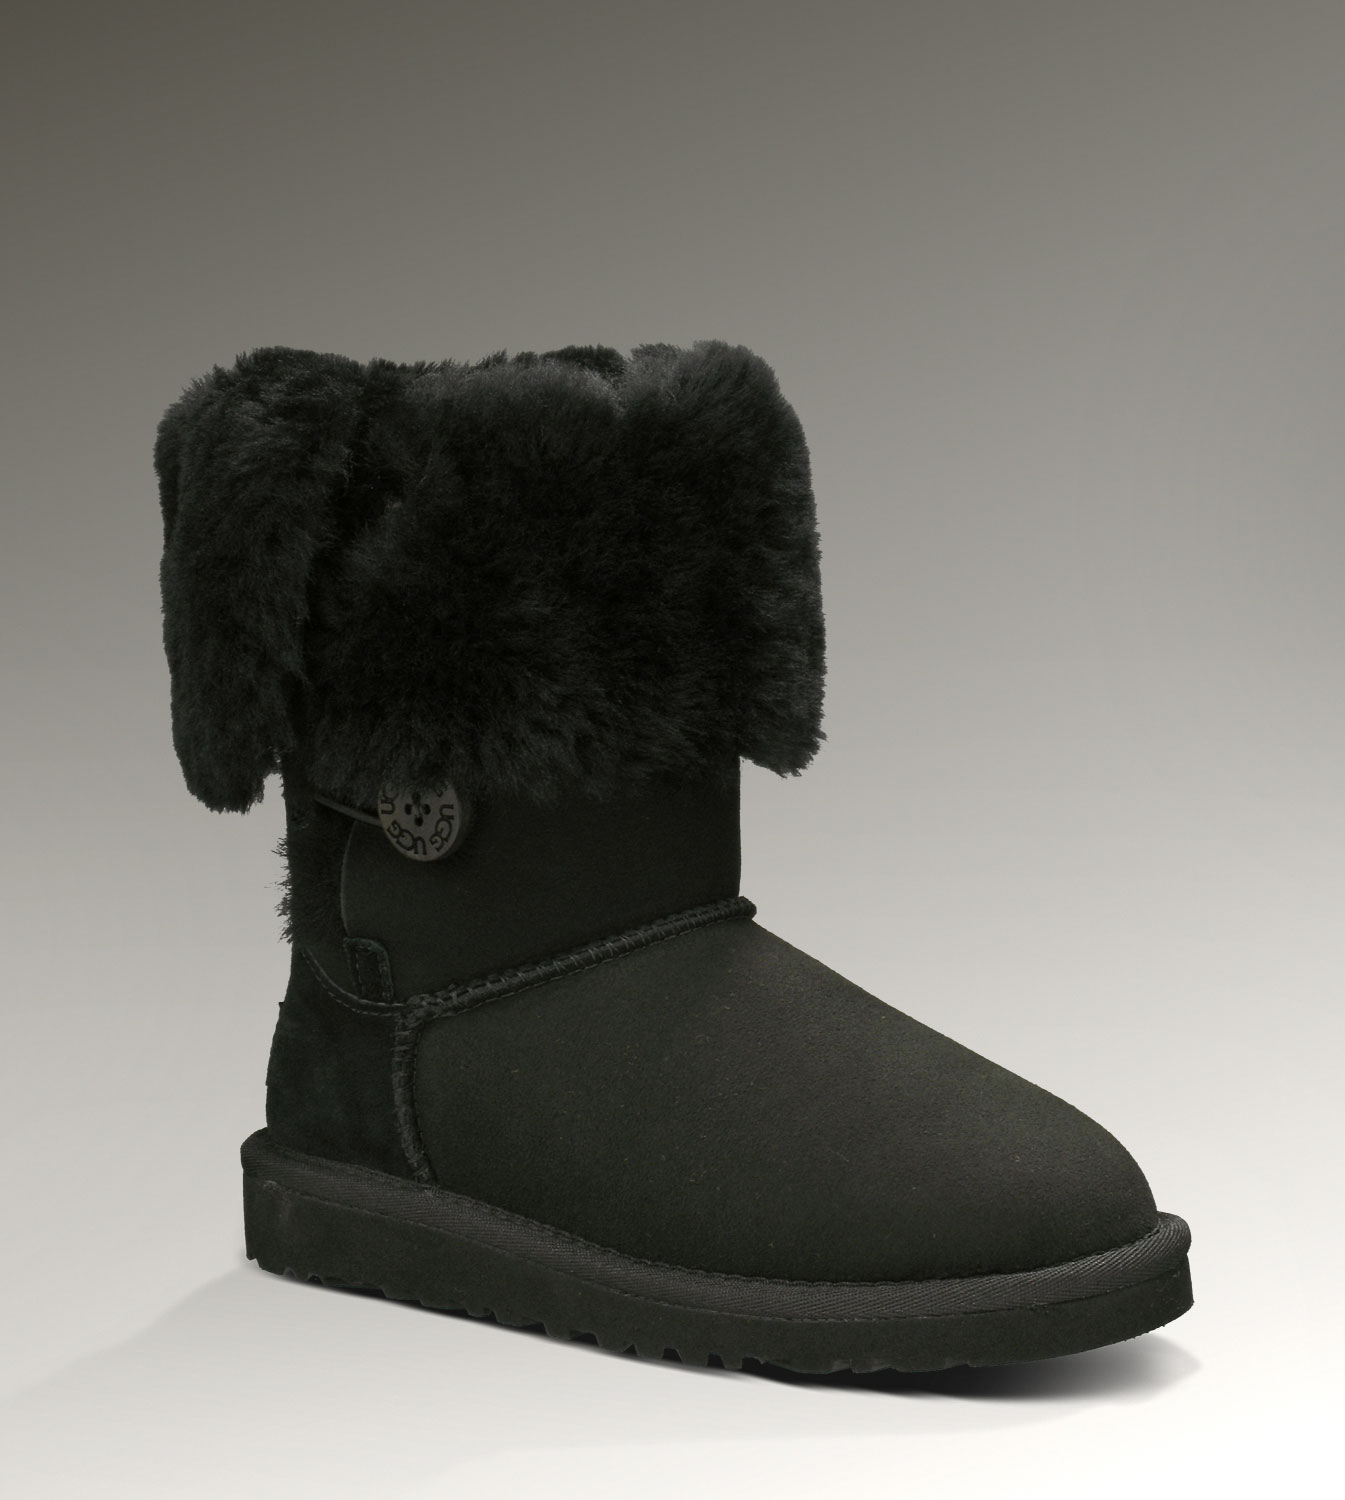 UGG Bailey Button Triplet 1962 Black Boots